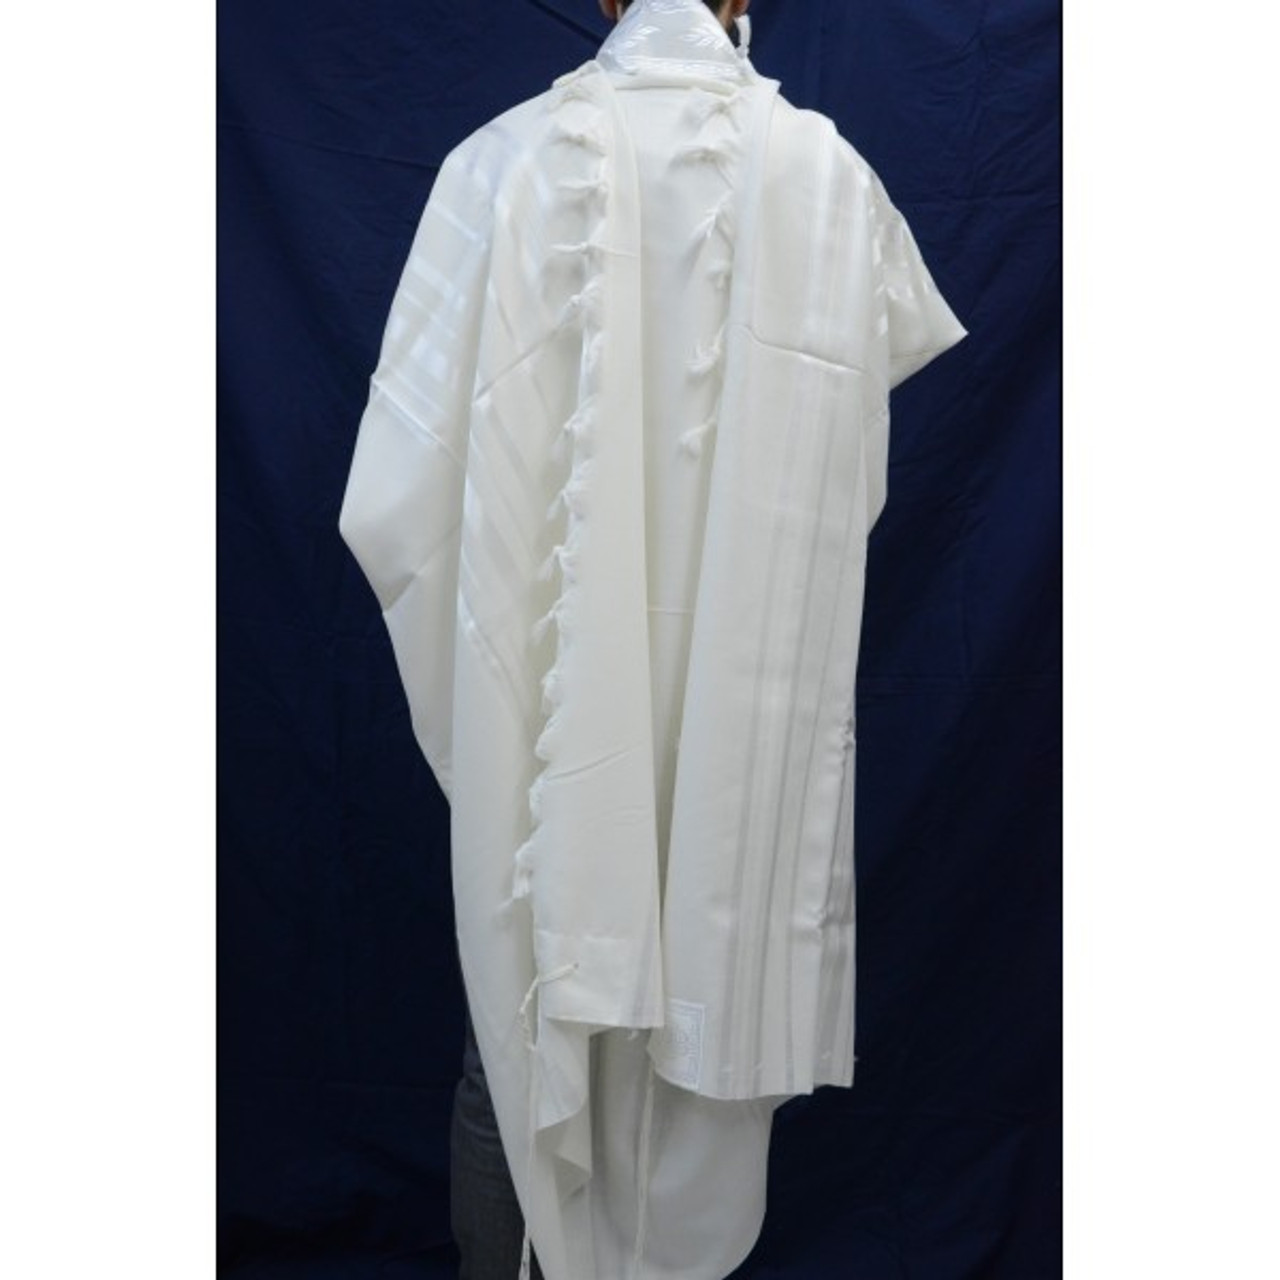 Tashbetz White-on-White Nonslip Tallit, Size 60